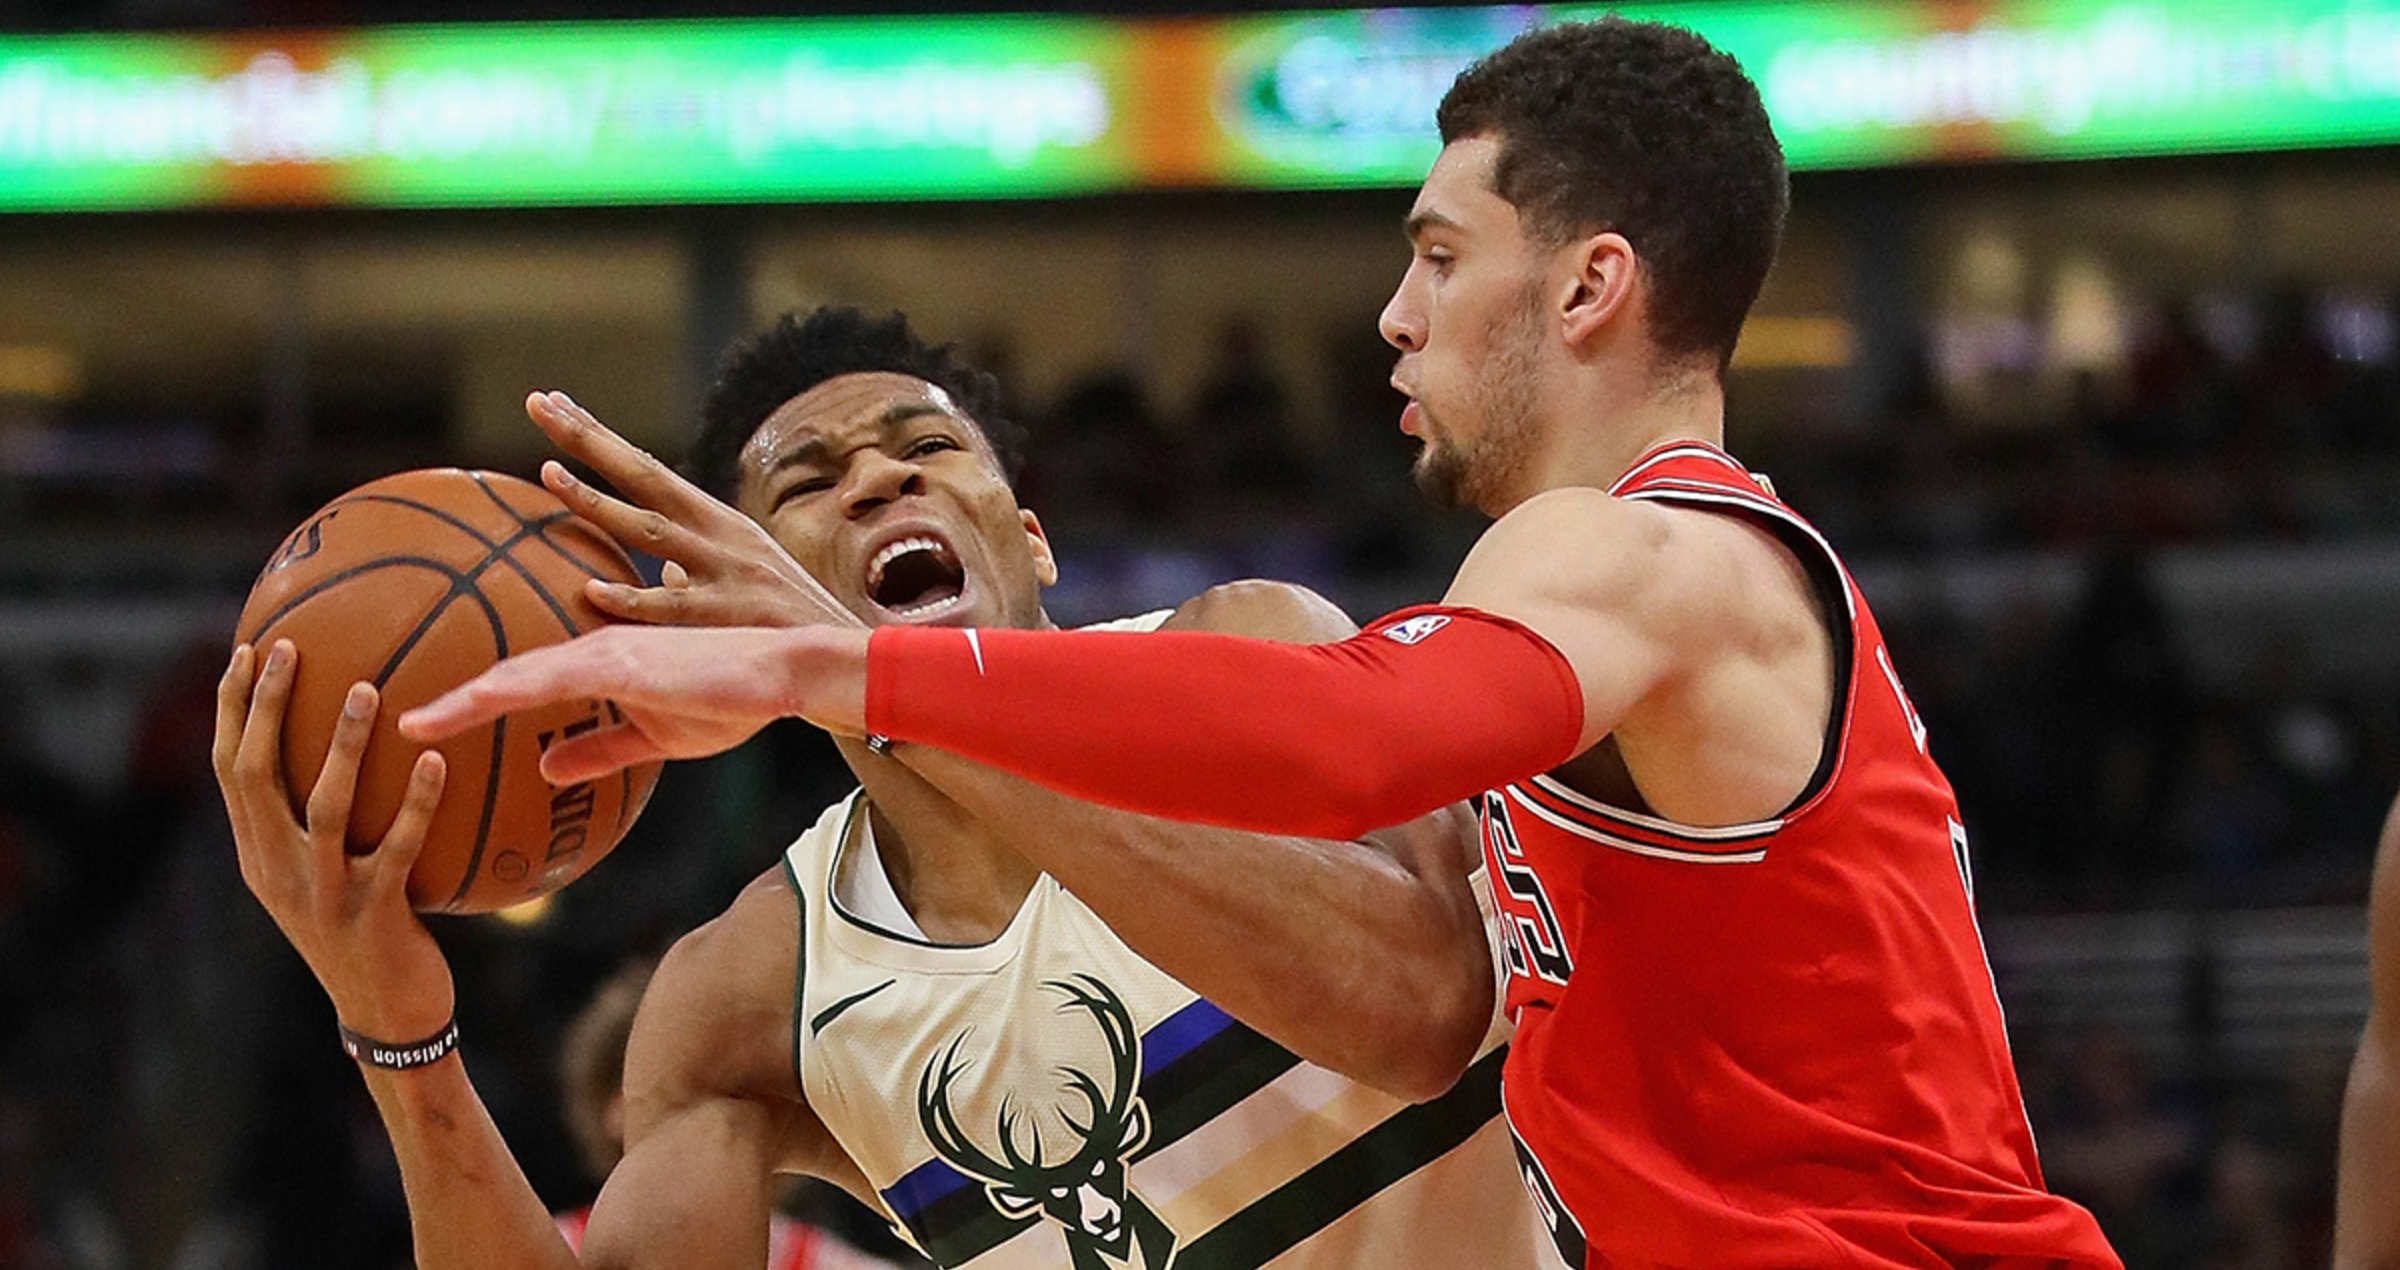 a0ba6e026a88 Bulls Fall to Bucks in Sunday Afternoon Matinee in Chicago